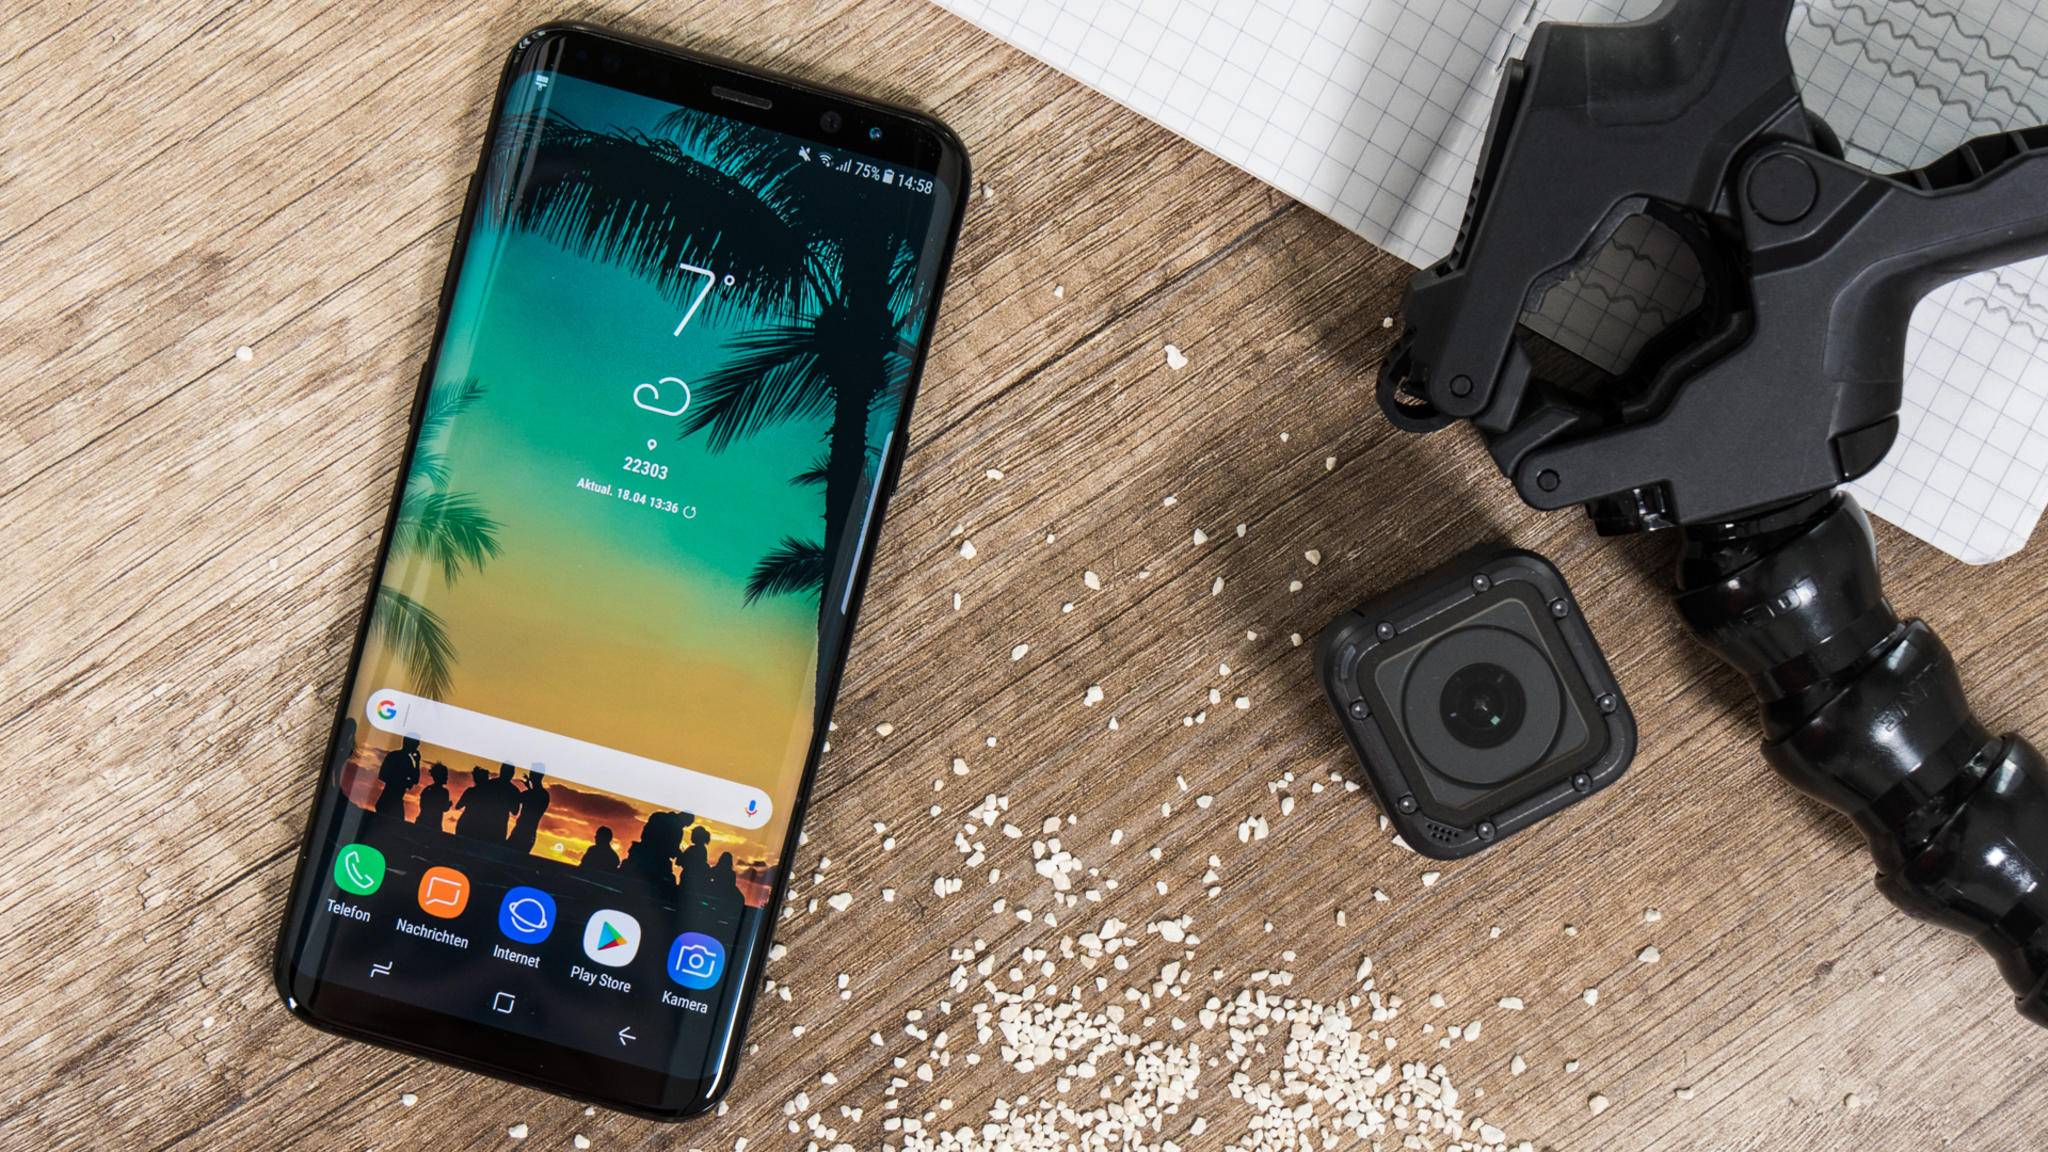 Samsung: Galaxy S8 bekommt offenbar kein Android 10